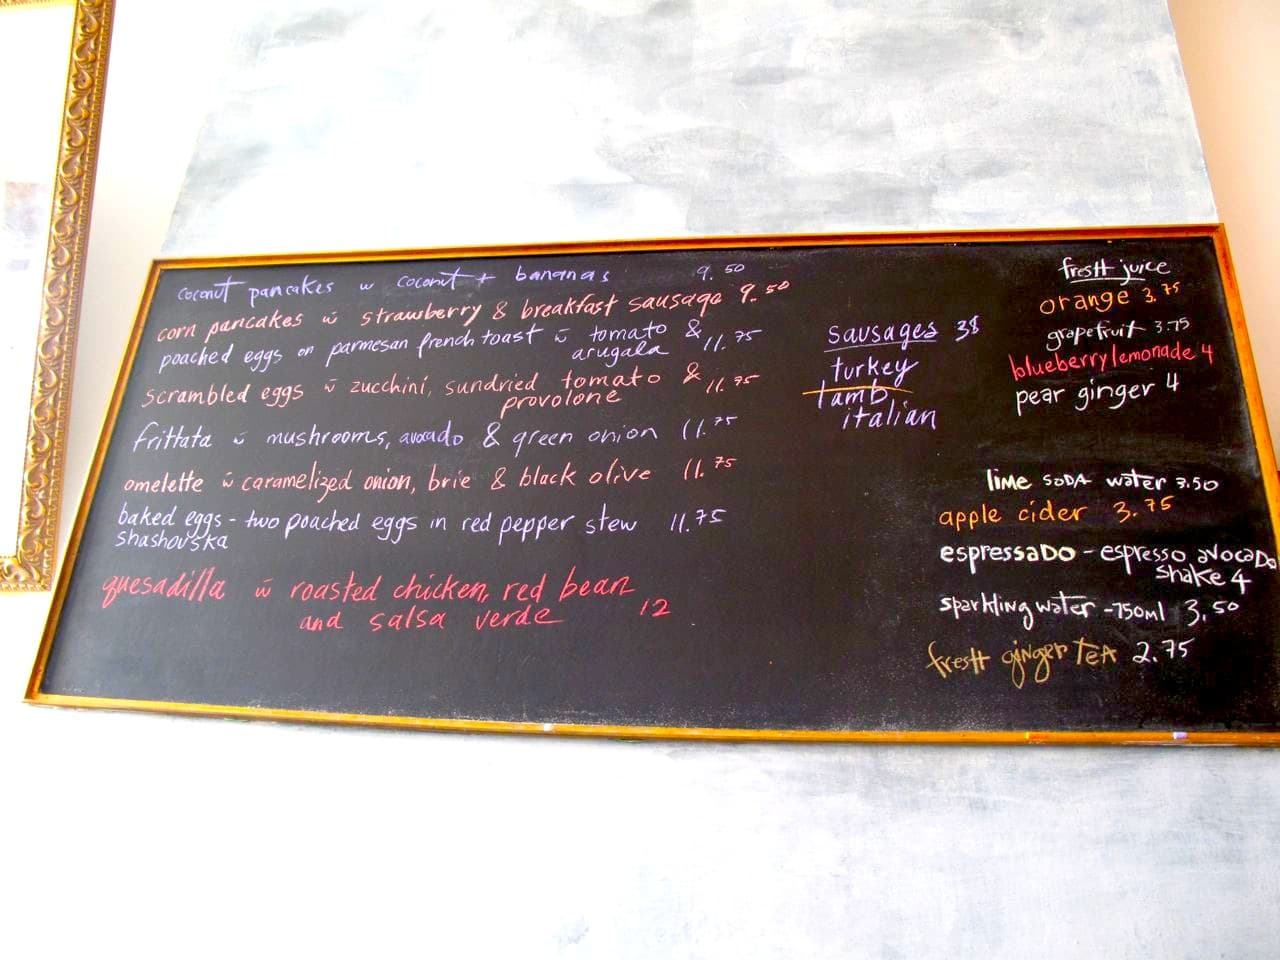 Saving Grace features its daily brunch specials on a chalk board  in the dining room.